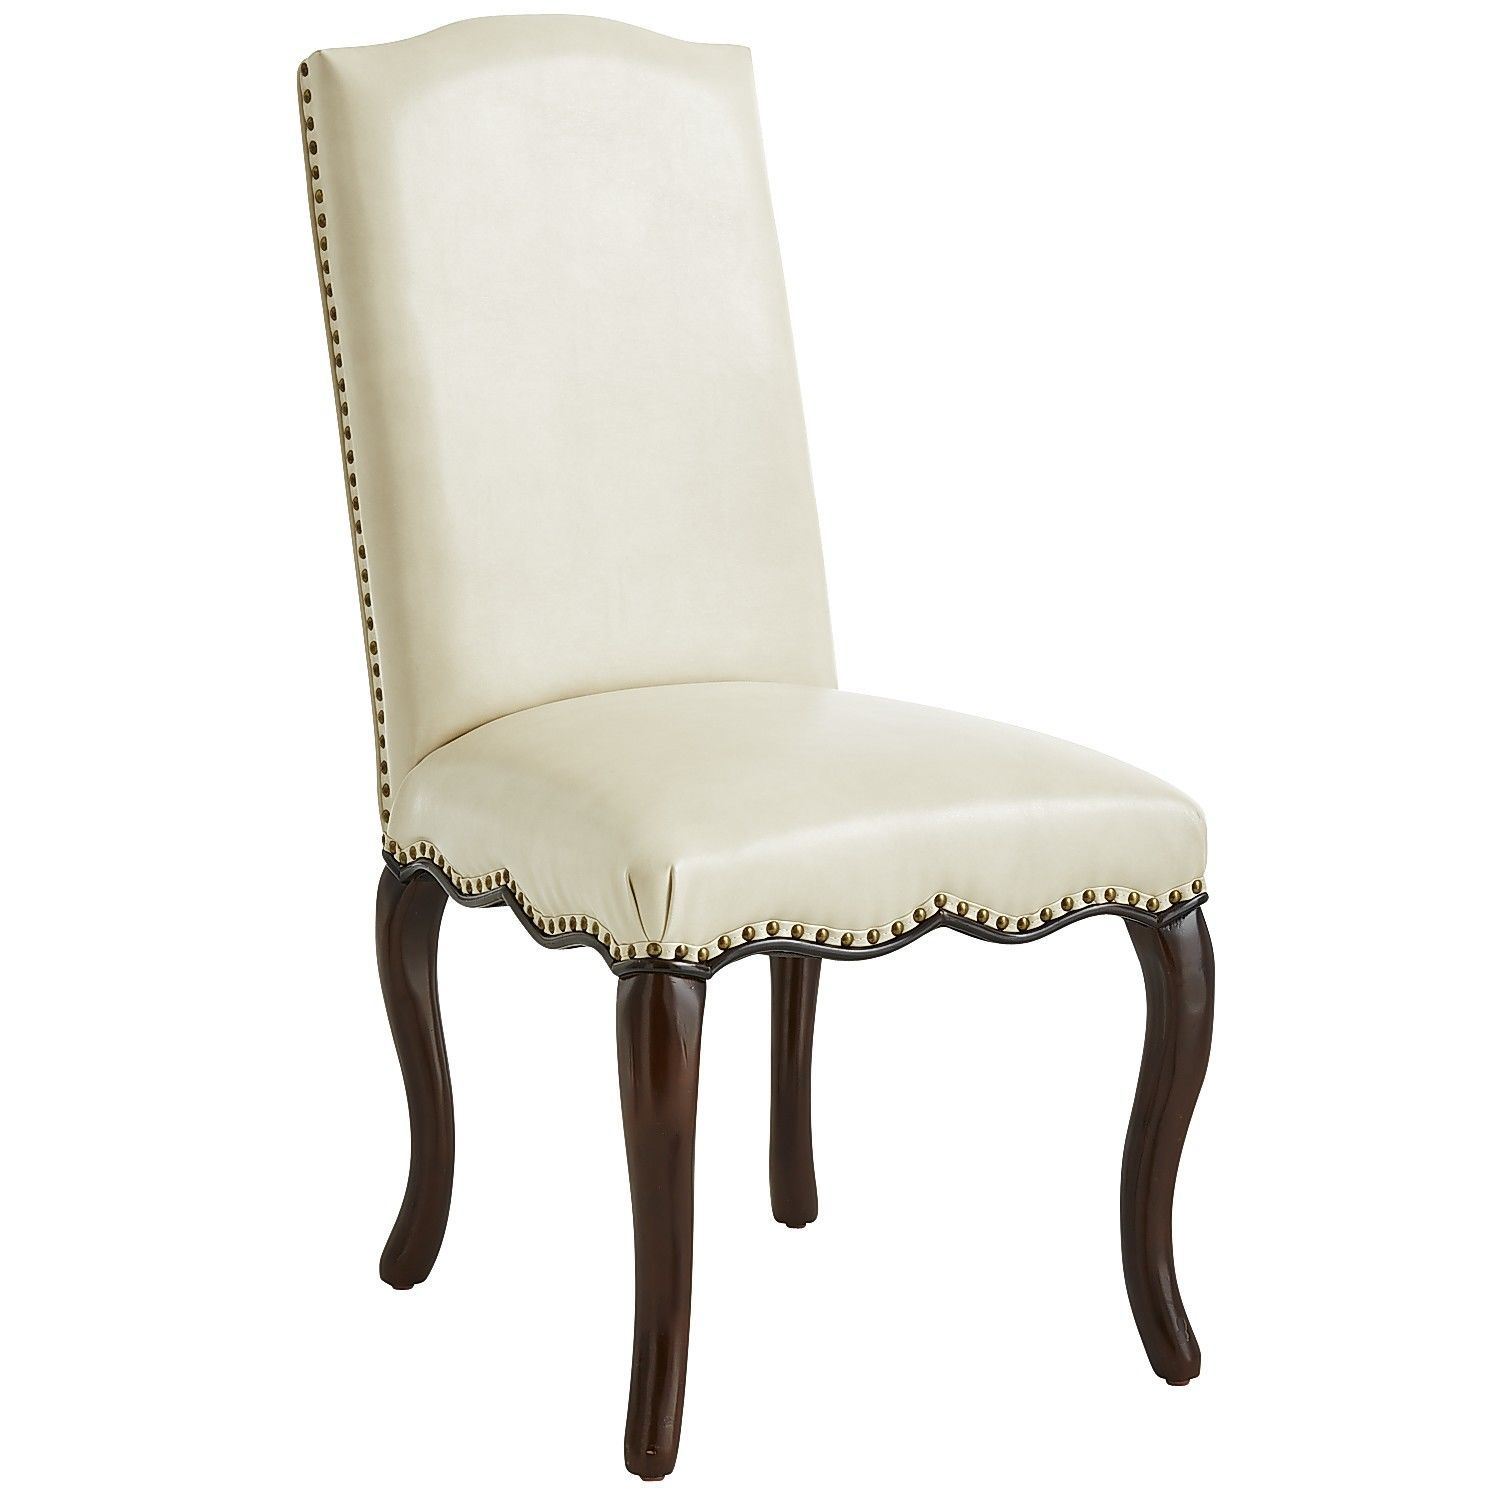 Ivory Dining Room Chairs Custom Claudine Ivory Dining Chair  Ivory Nailhead Trim And Dining Chairs Inspiration Design